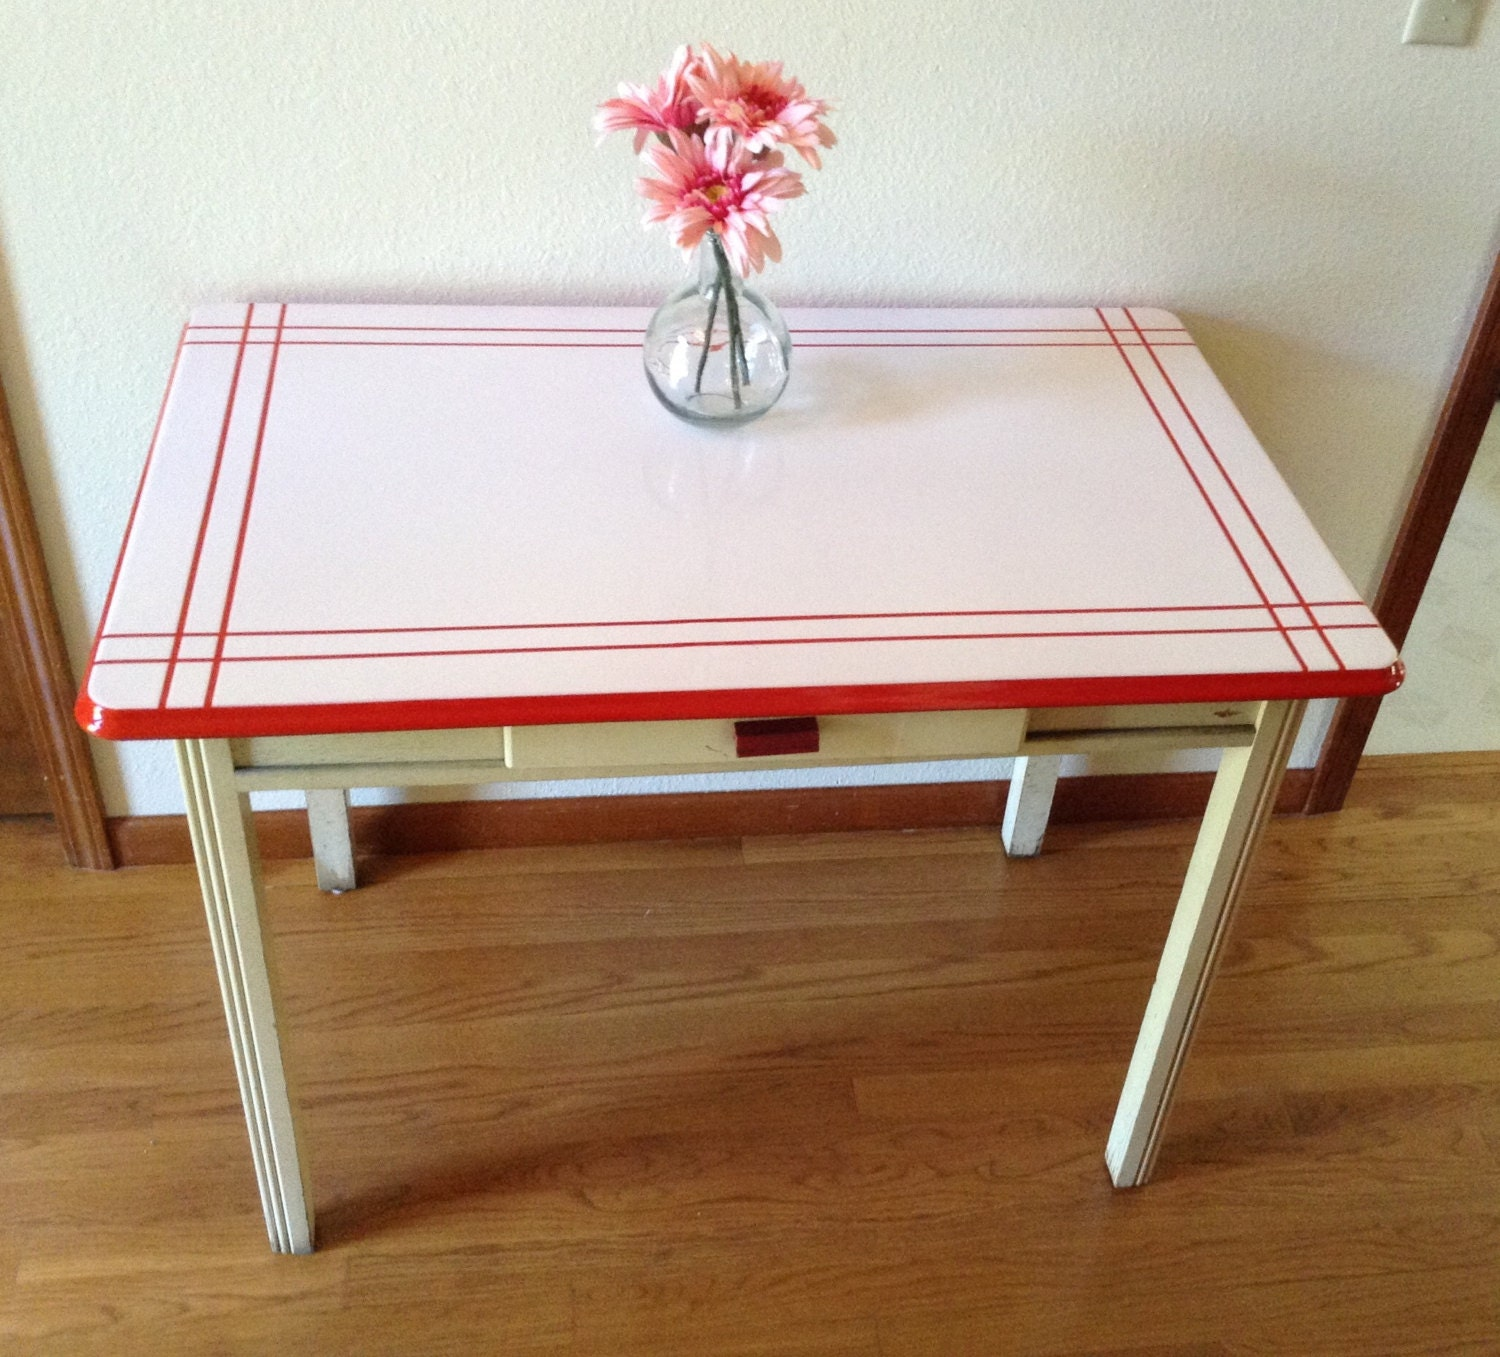 Old Kitchen Table: Hold For Barbara....Vintage Enamel Table Porcelain Top Table